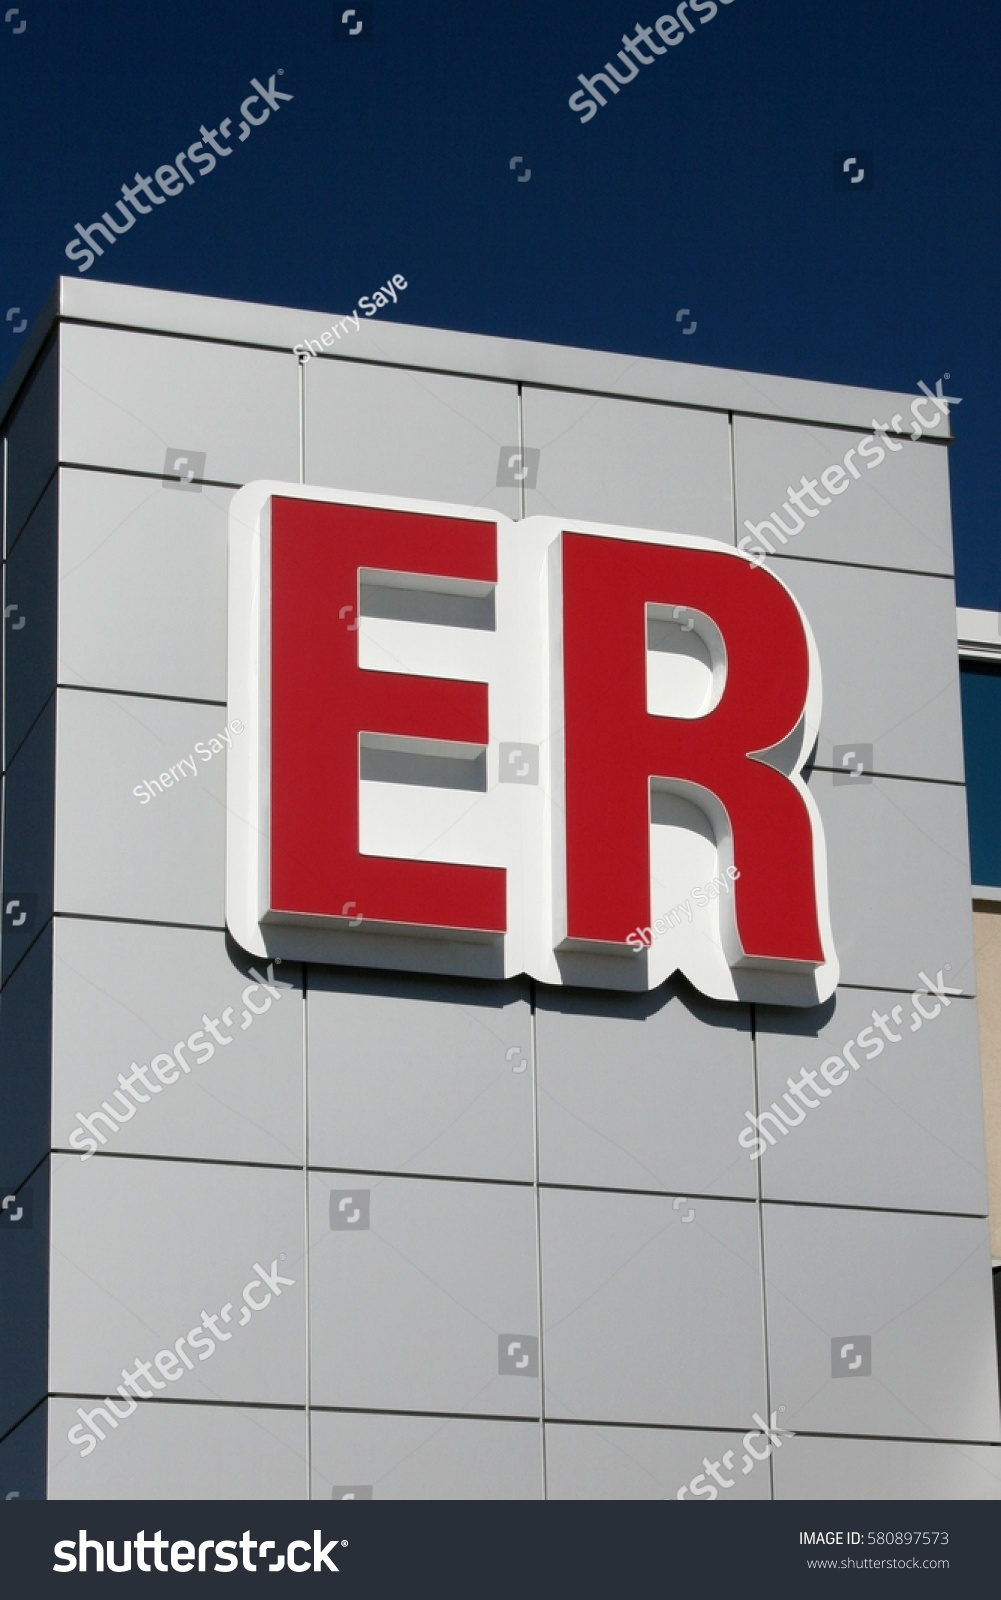 Abbreviated emergency room er sign above stock photo 580897573 abbreviated emergency room er sign above entrance against blue sky buycottarizona Images